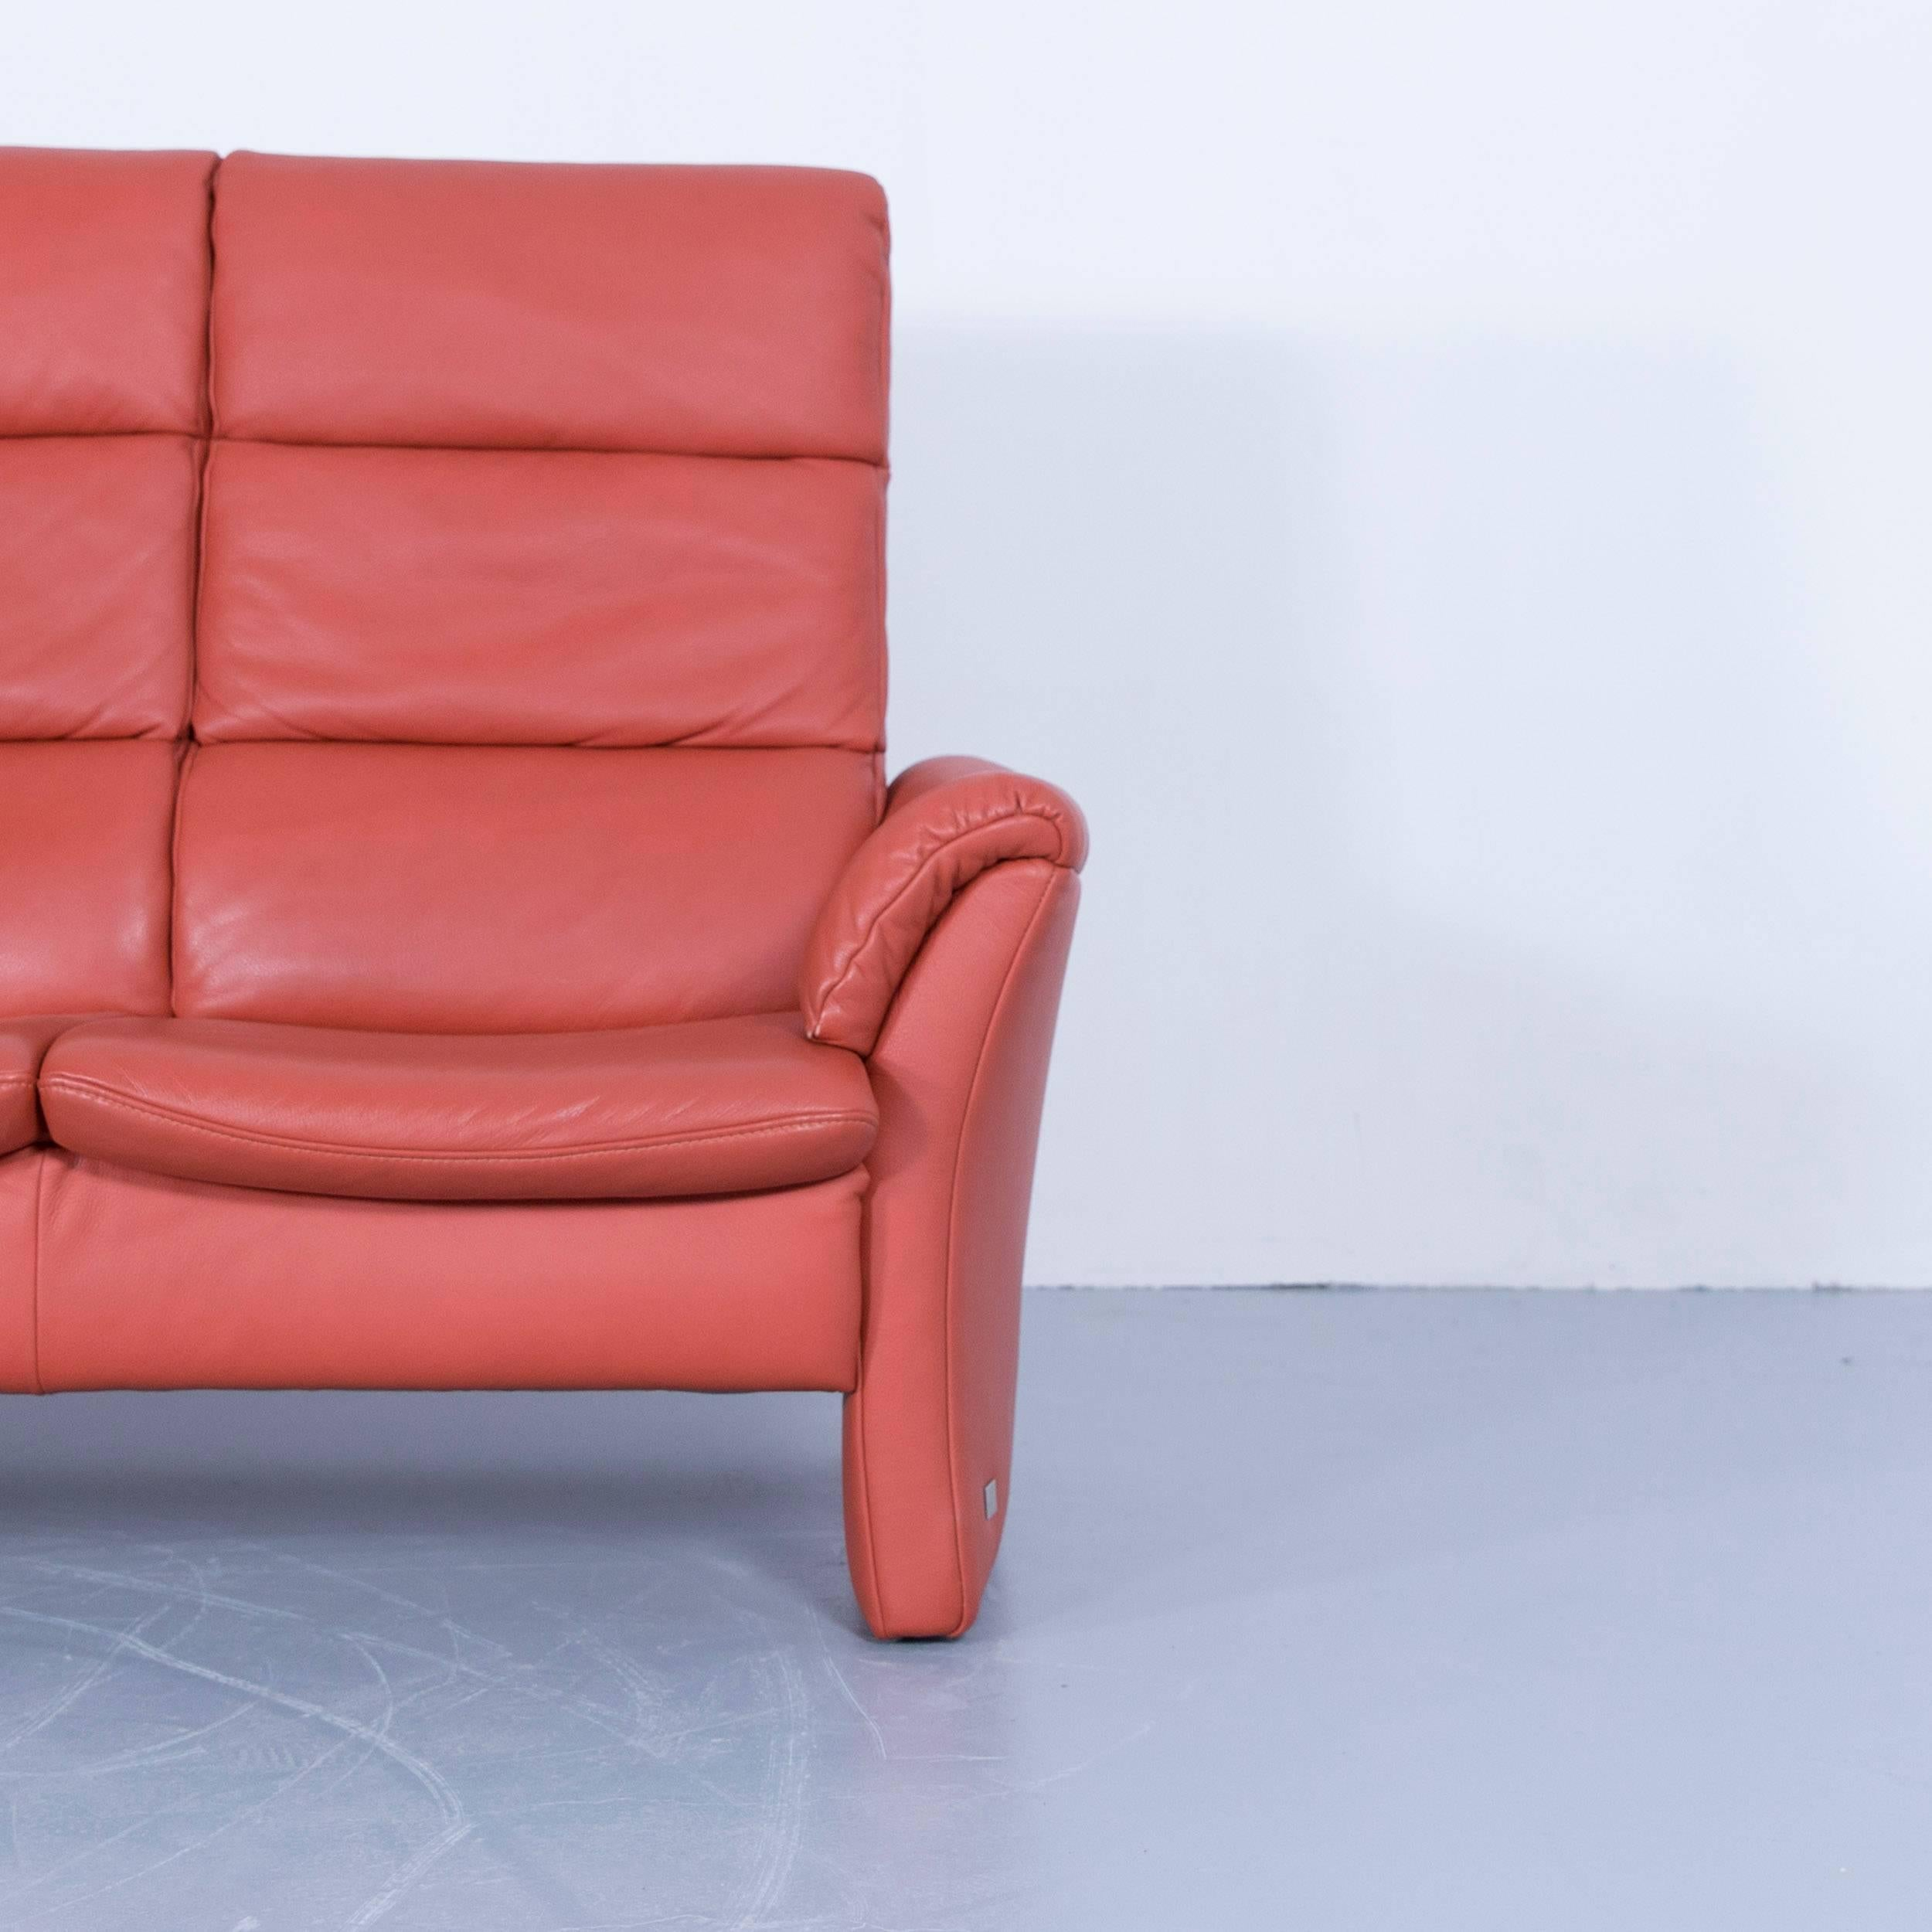 Großartig Himolla Zerostress Sammlung Von Three-seat Sofa Leather Orange Relax One Seat